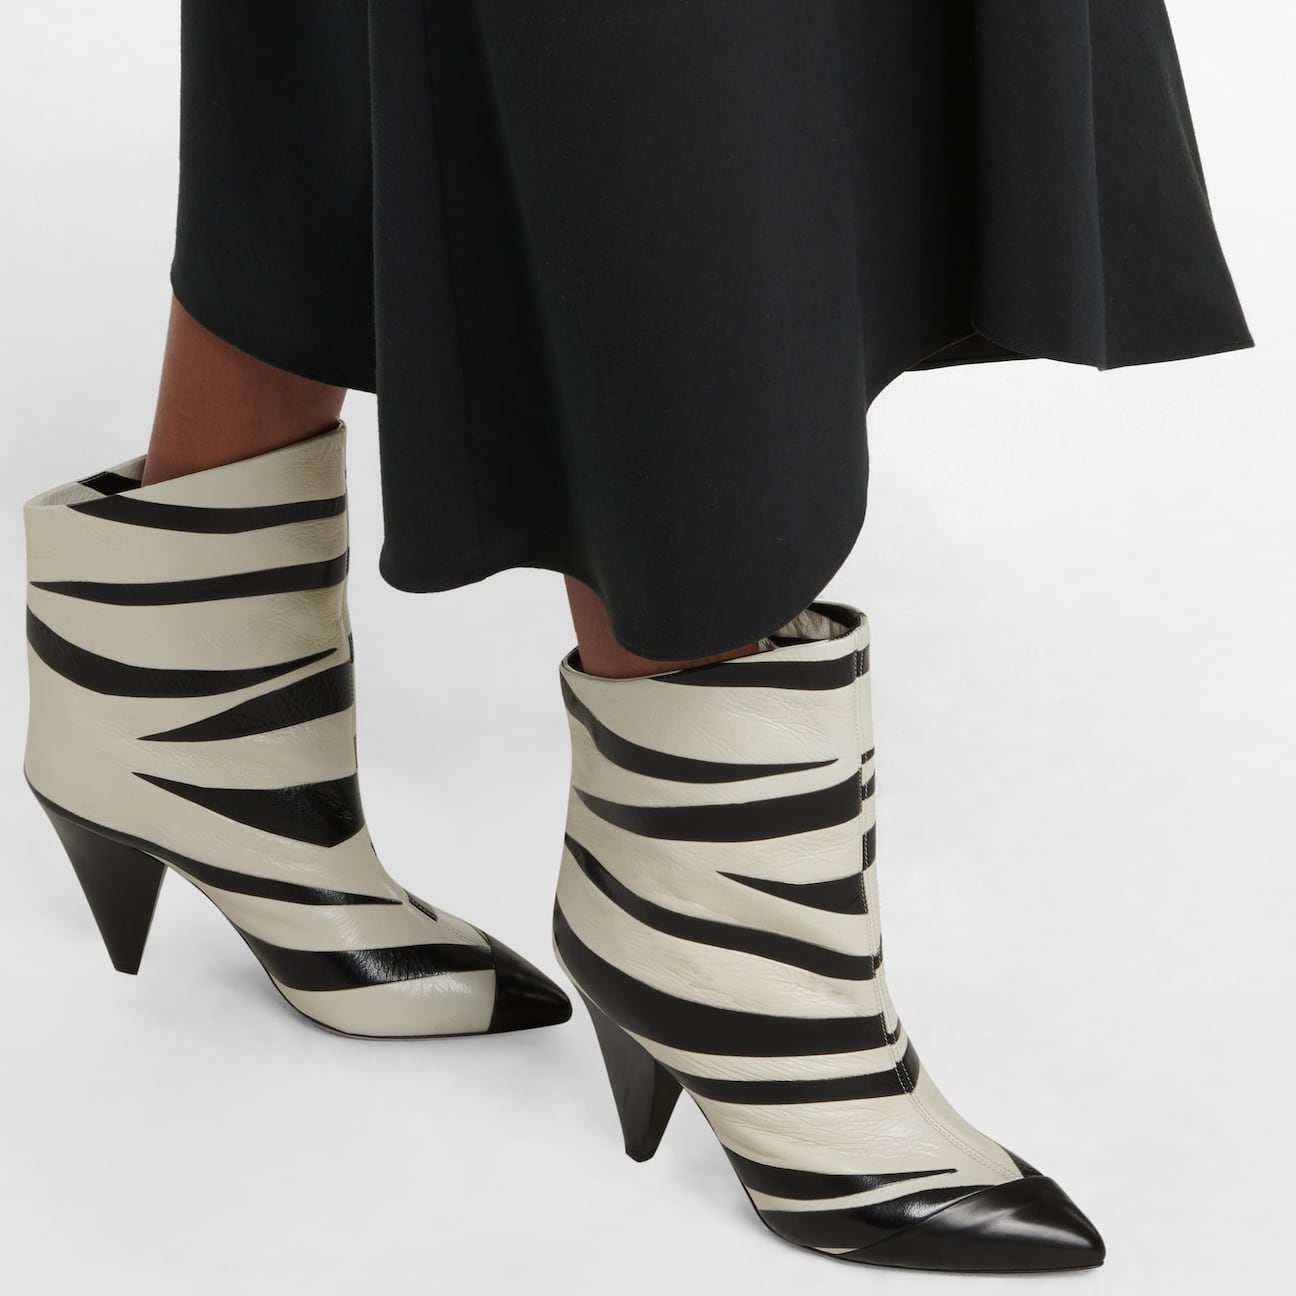 Above ankle-height boots with soft lambskin leather linings and uppers